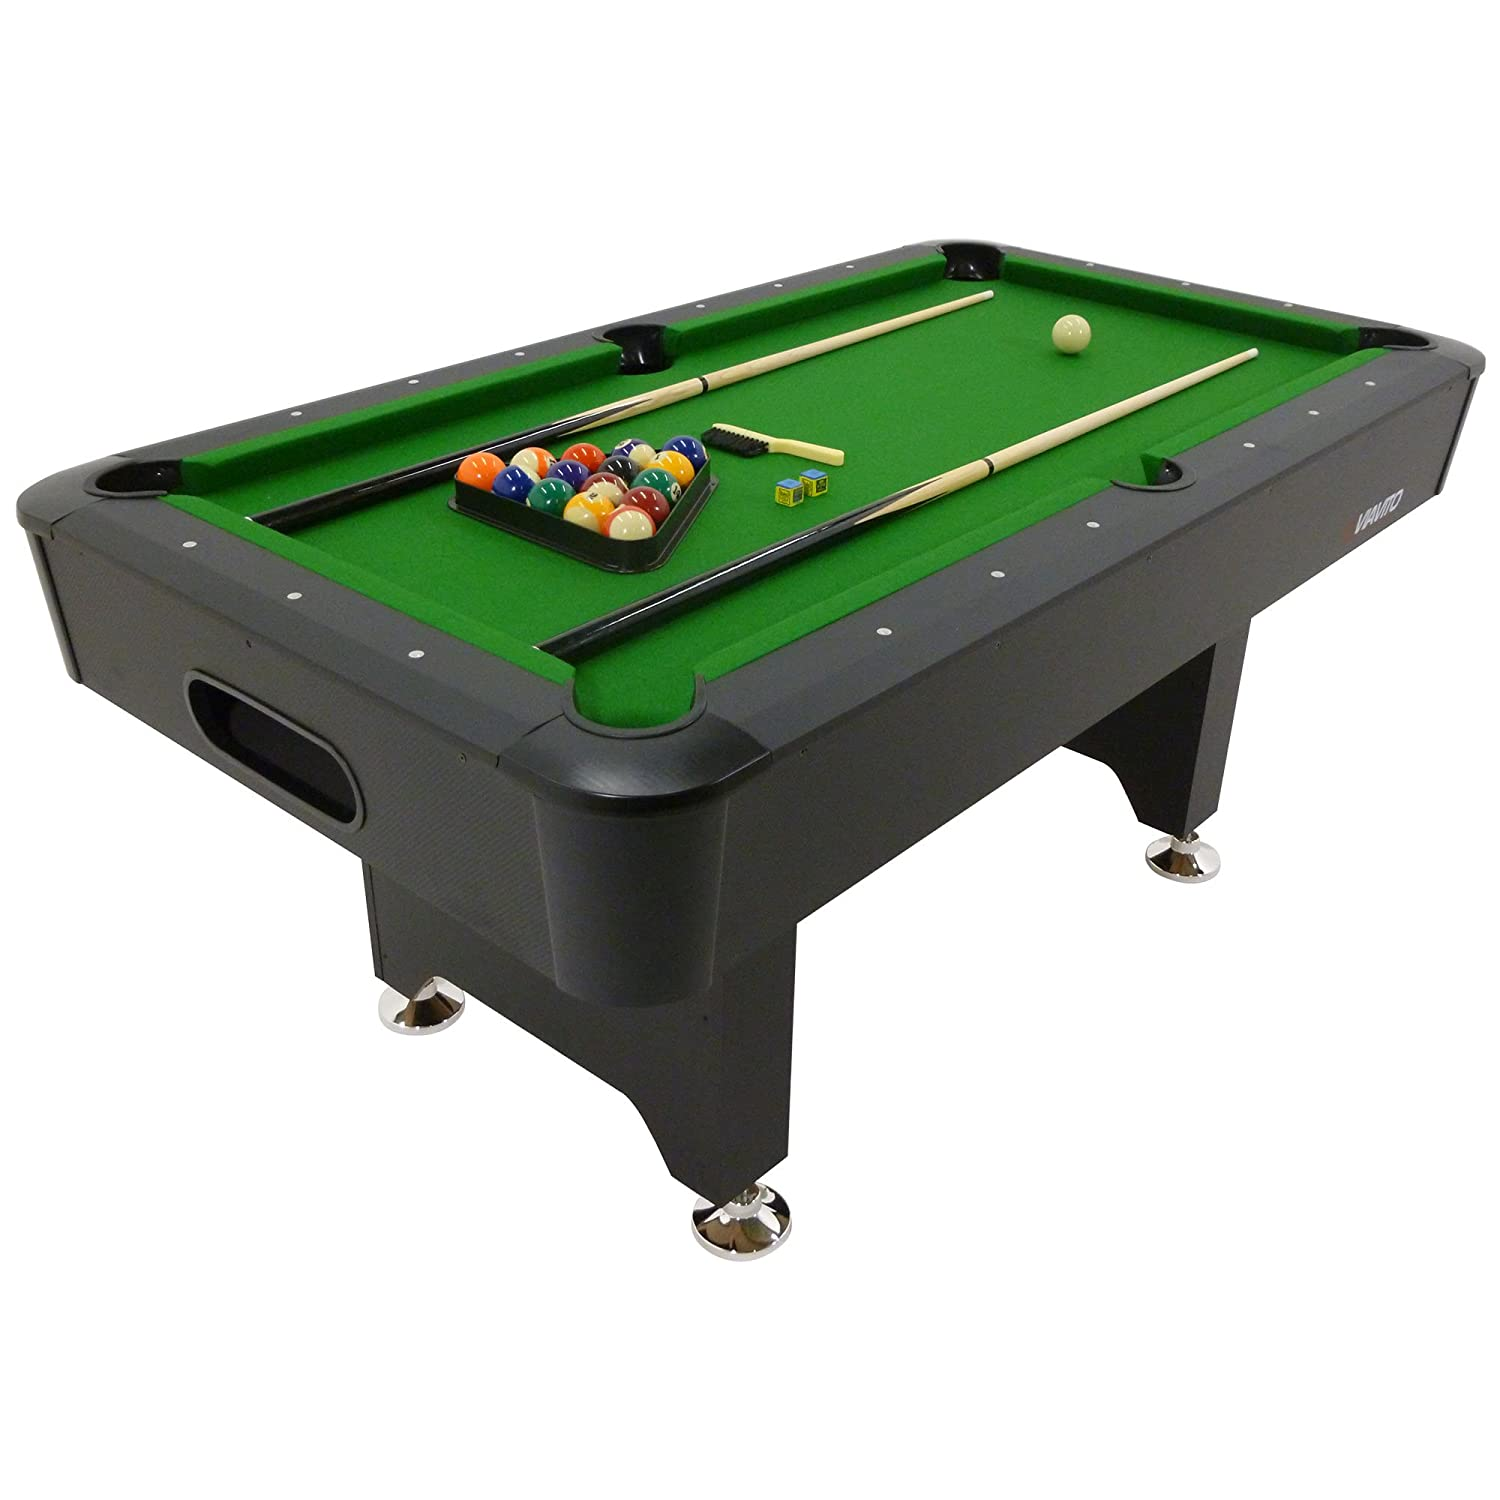 Cool Pool Tables For Sale on vaporbullfl.com